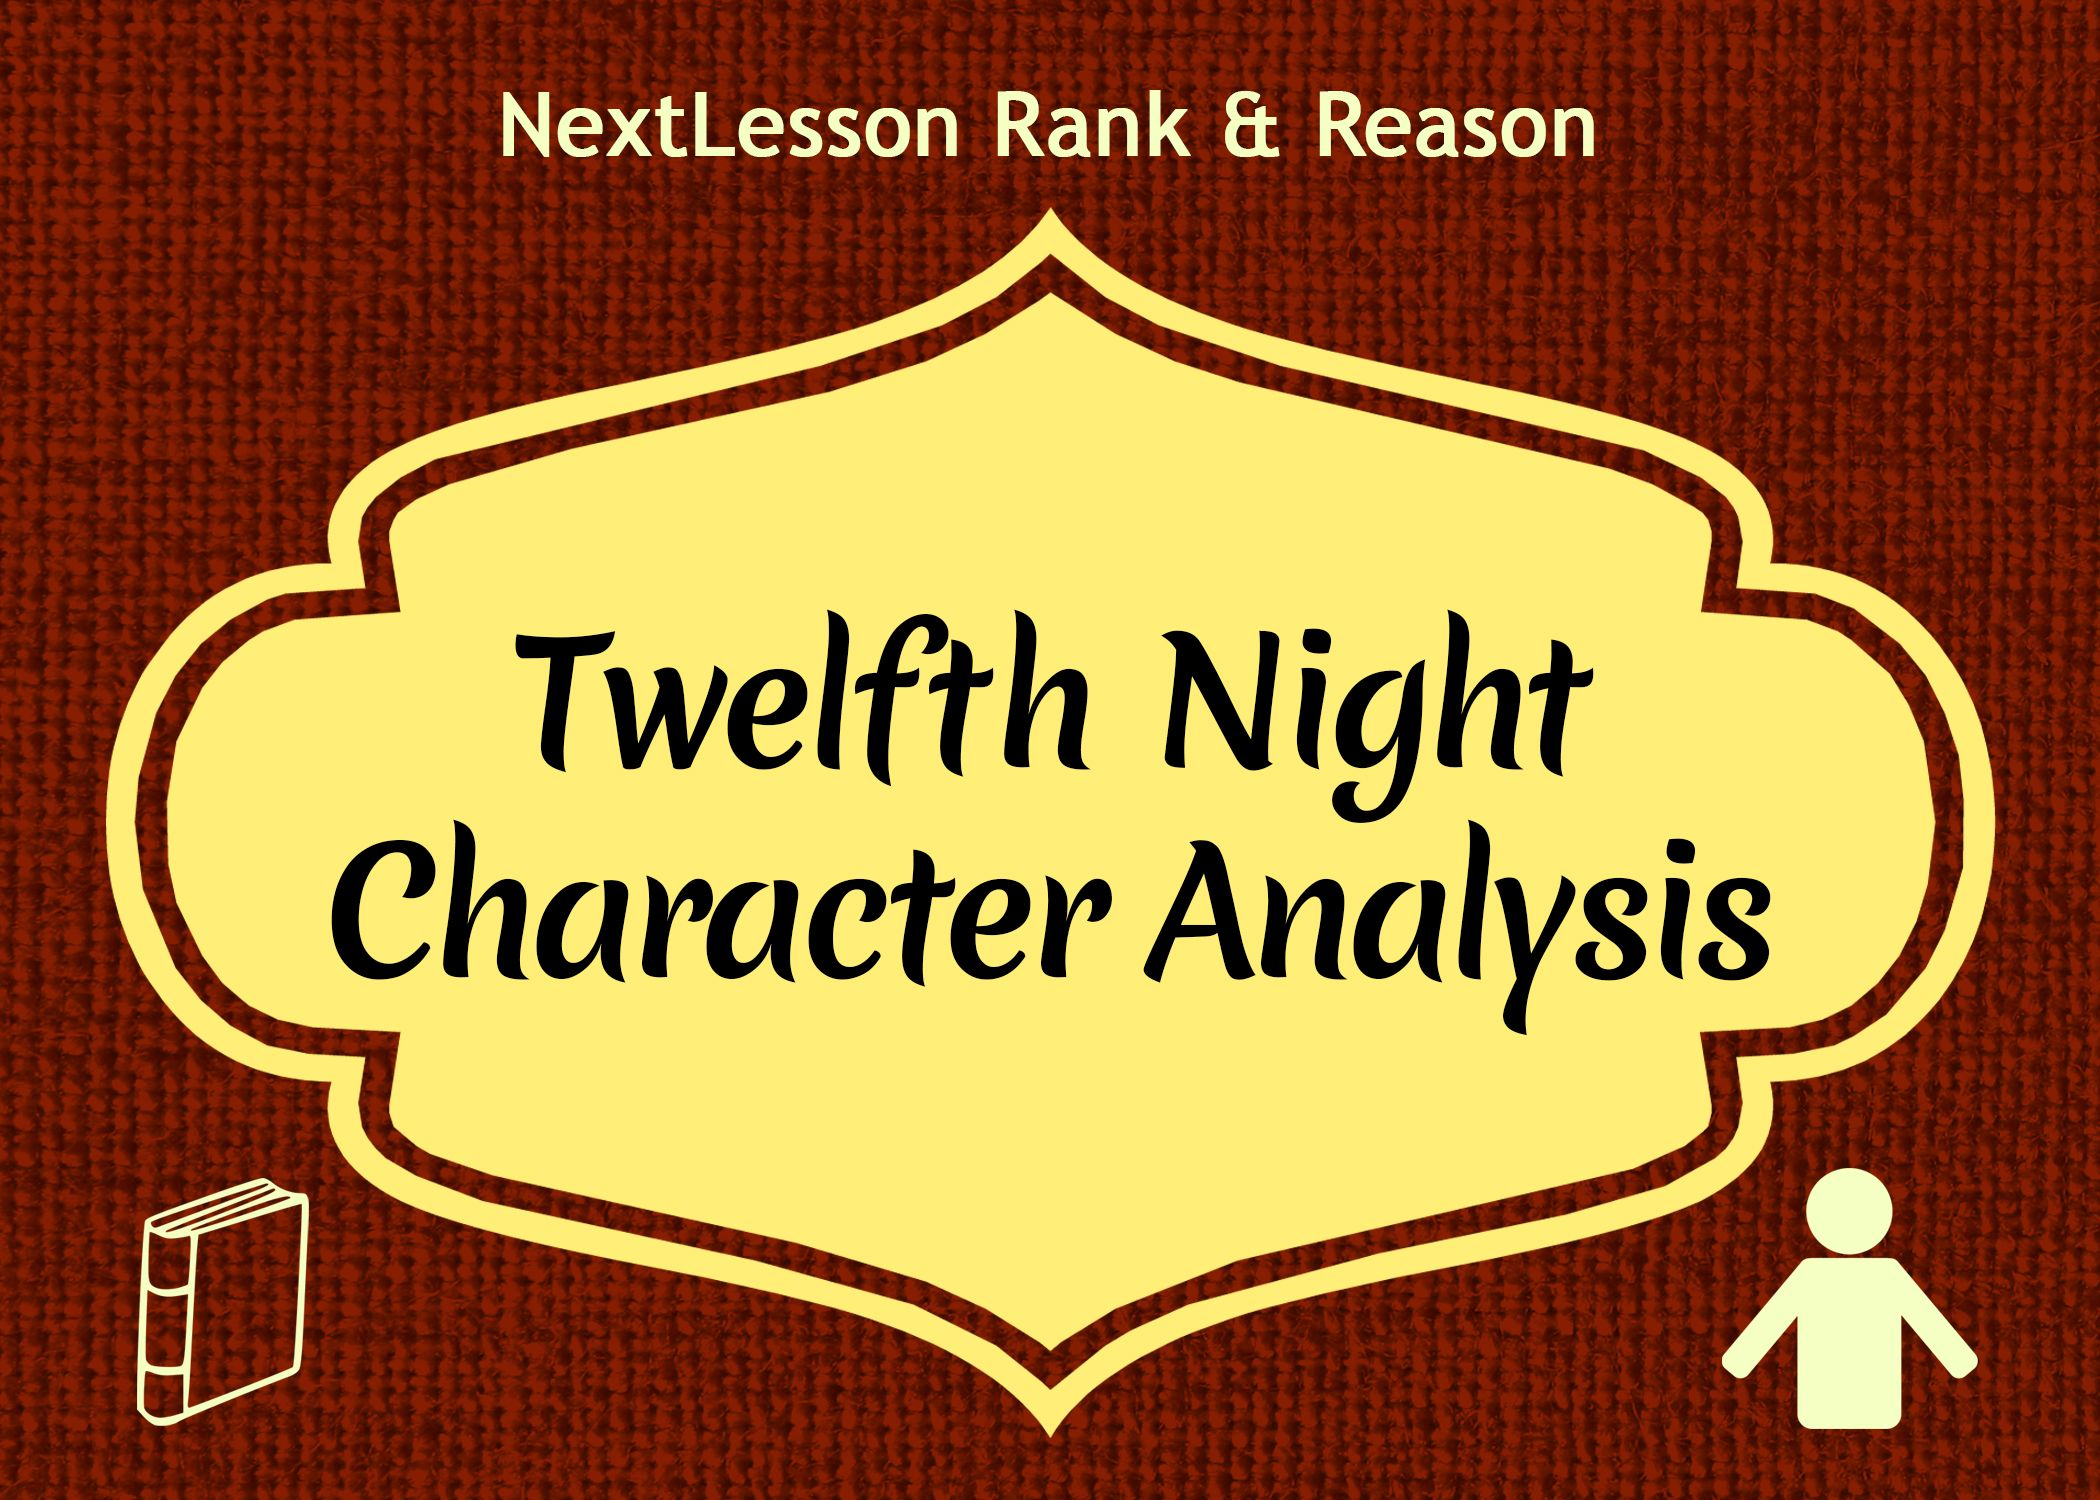 Twelfth Night Character Analysis  Critical ThinkingProblem